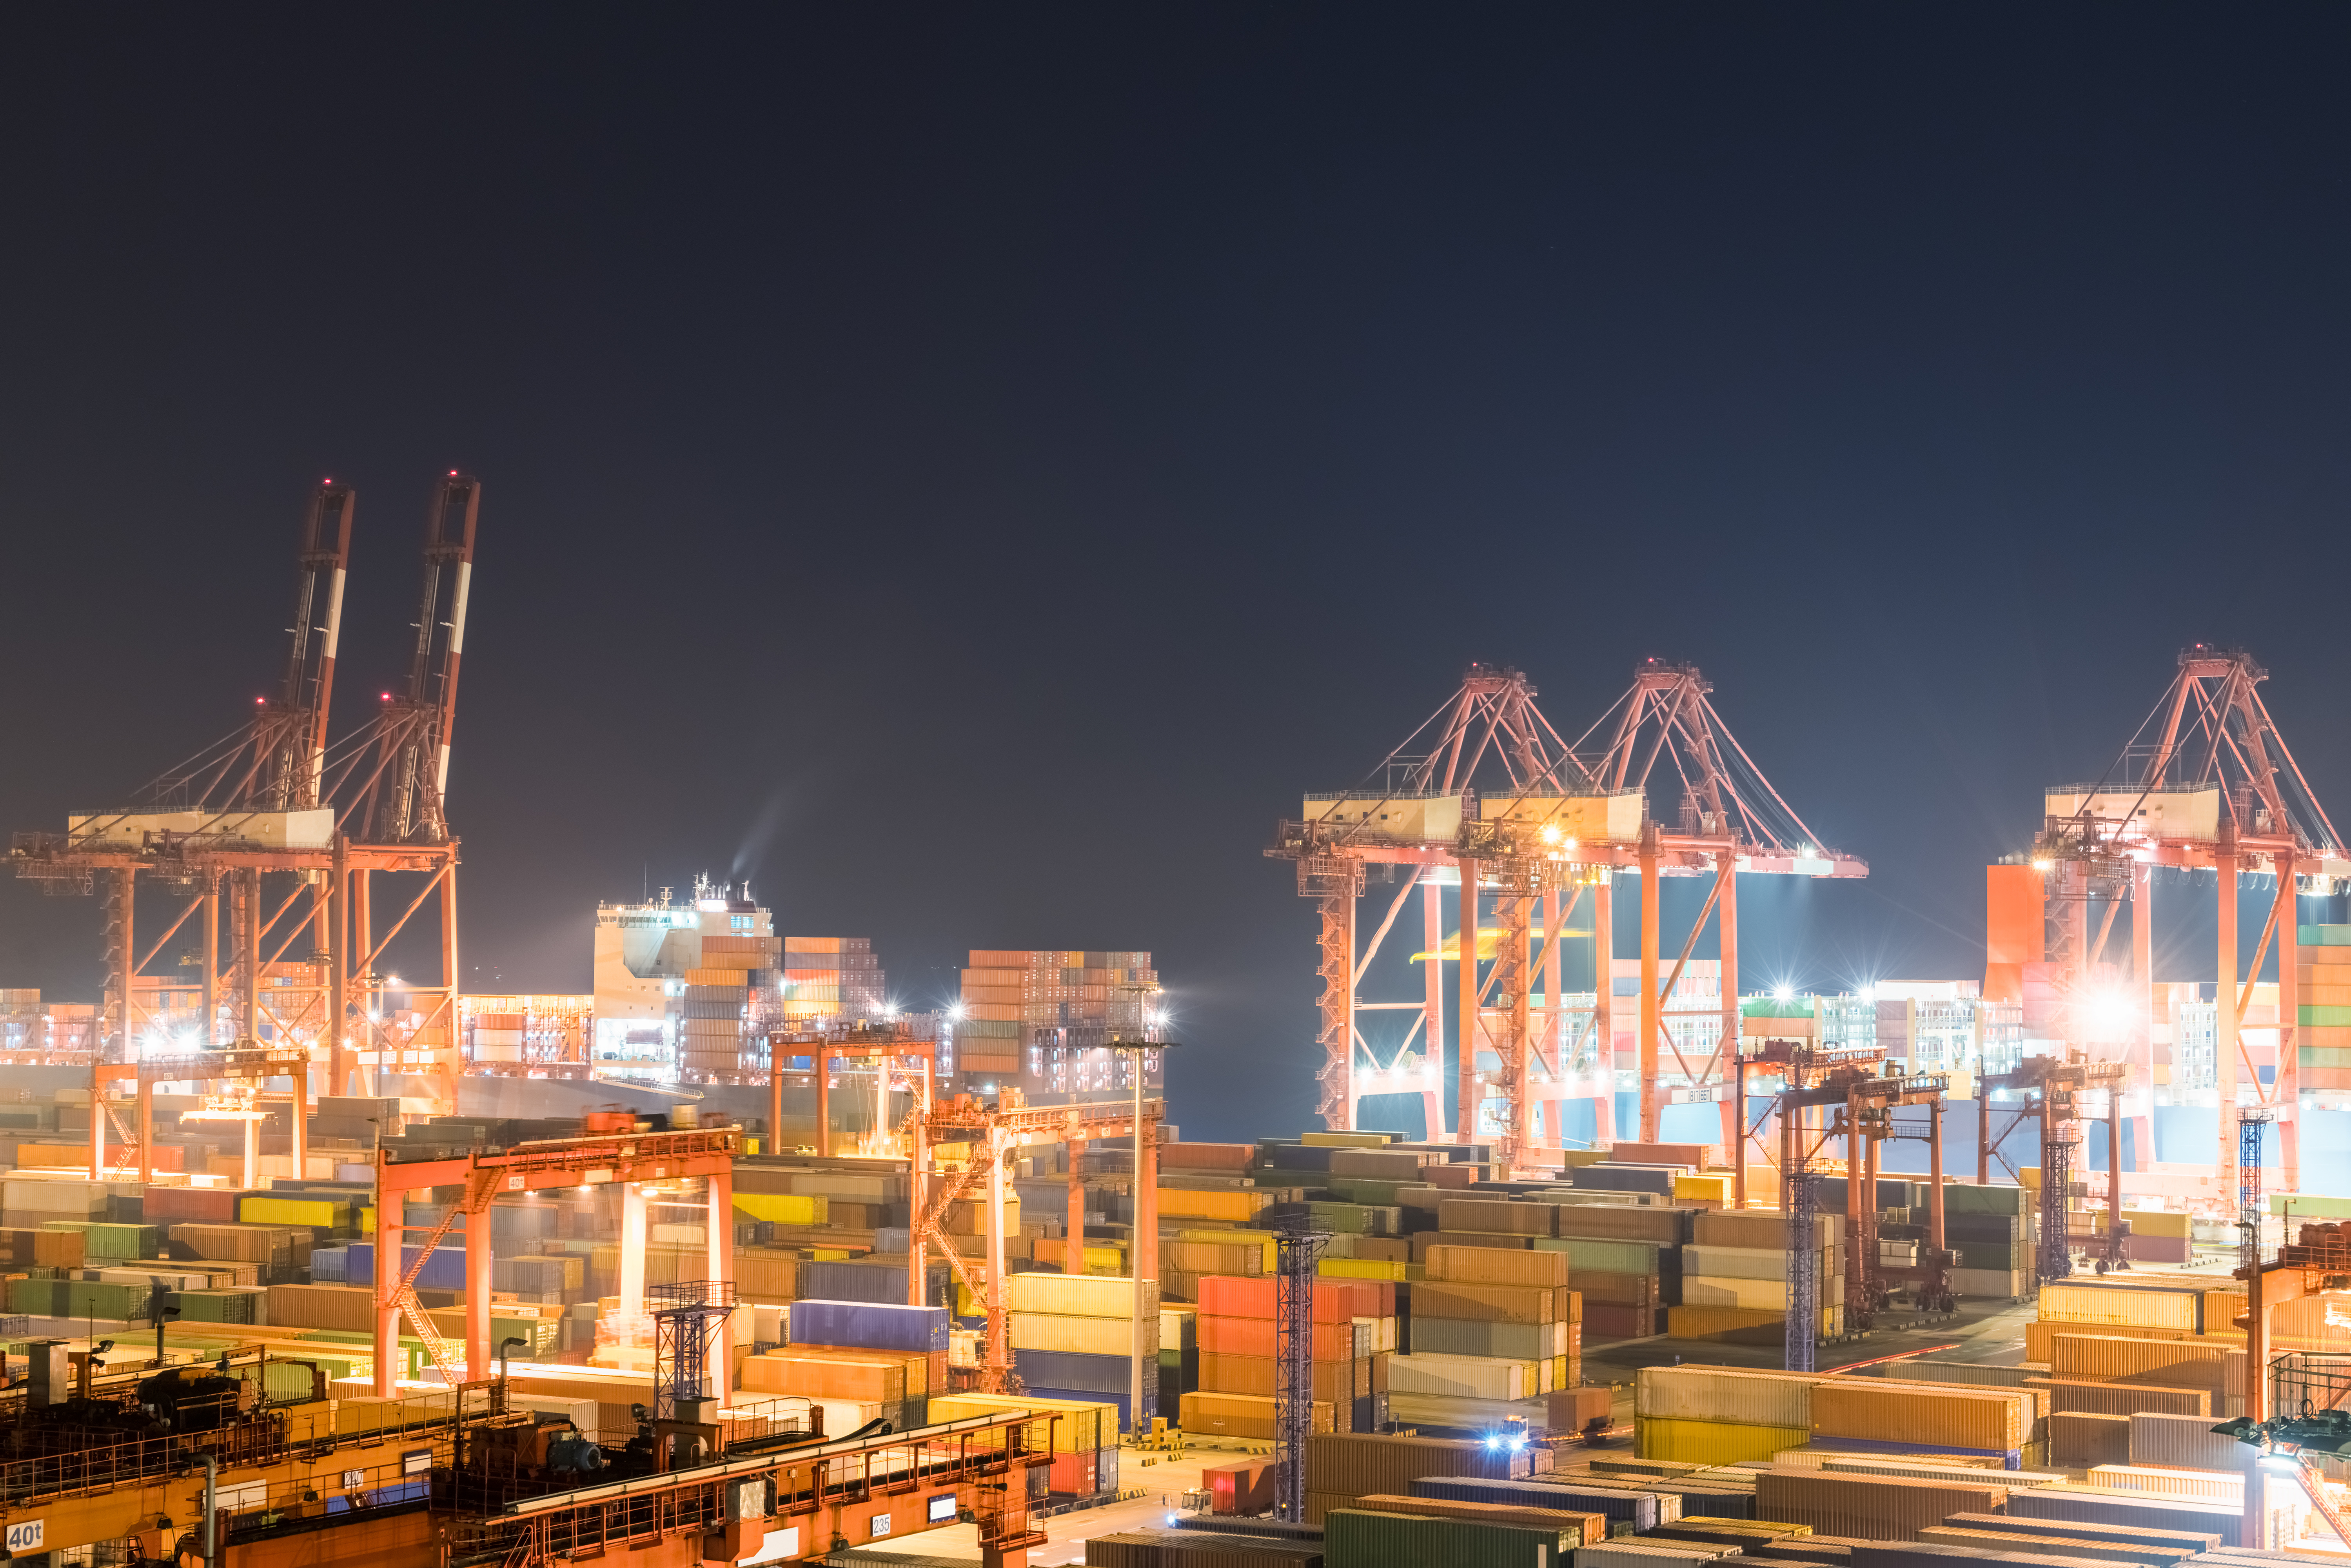 Shipping port in Shanghai at night